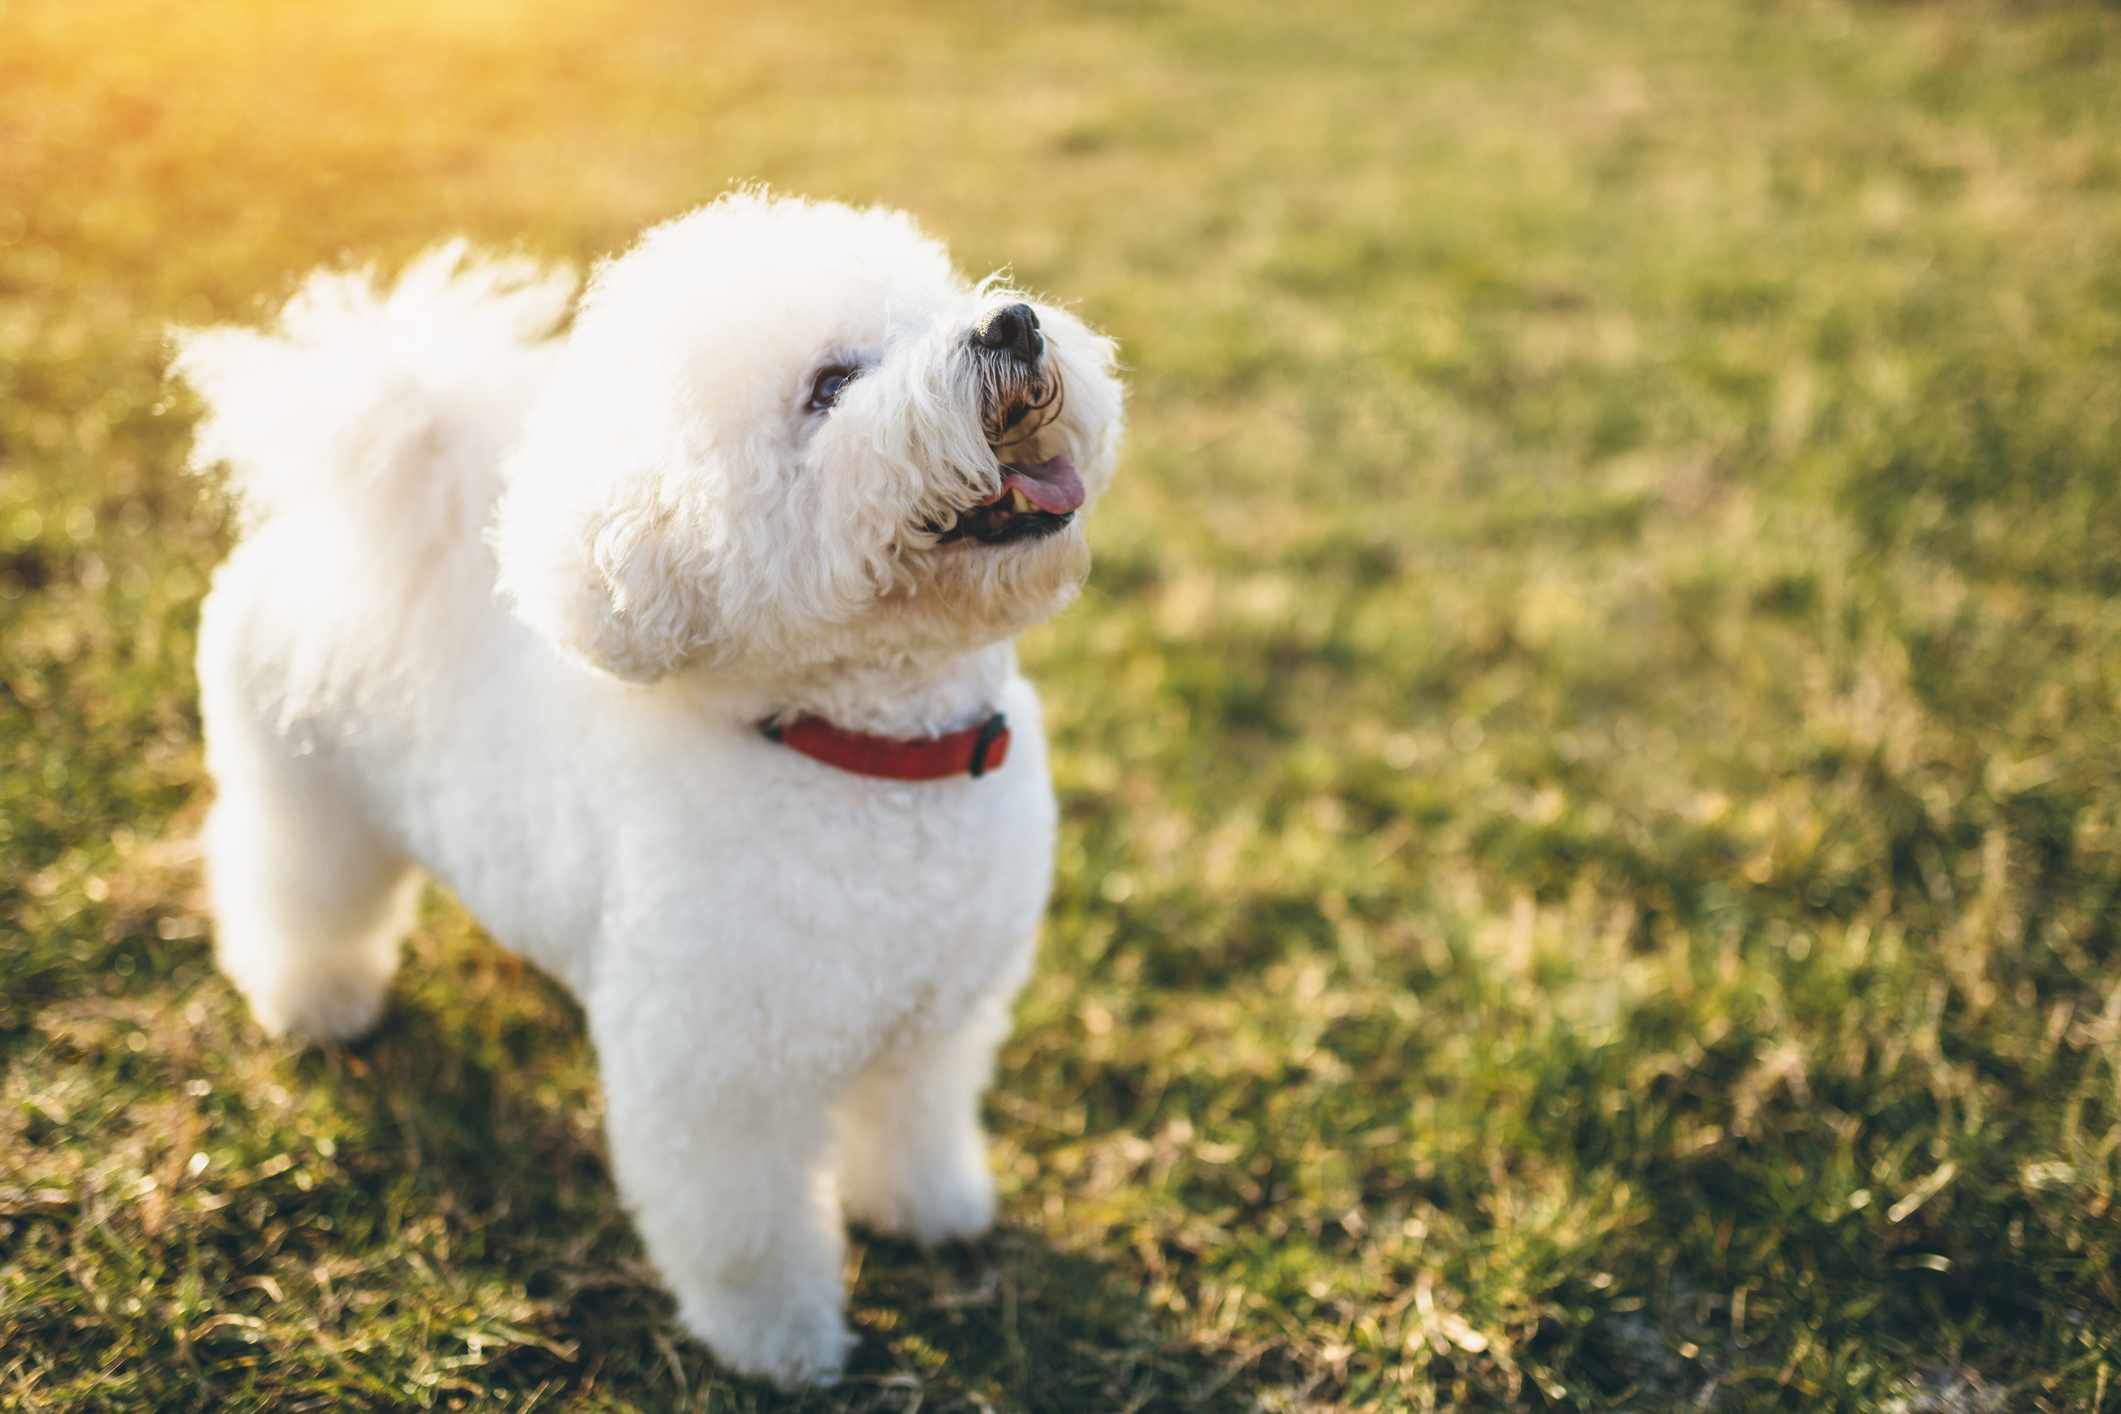 A white bichon frise dog standing outside and looking up.